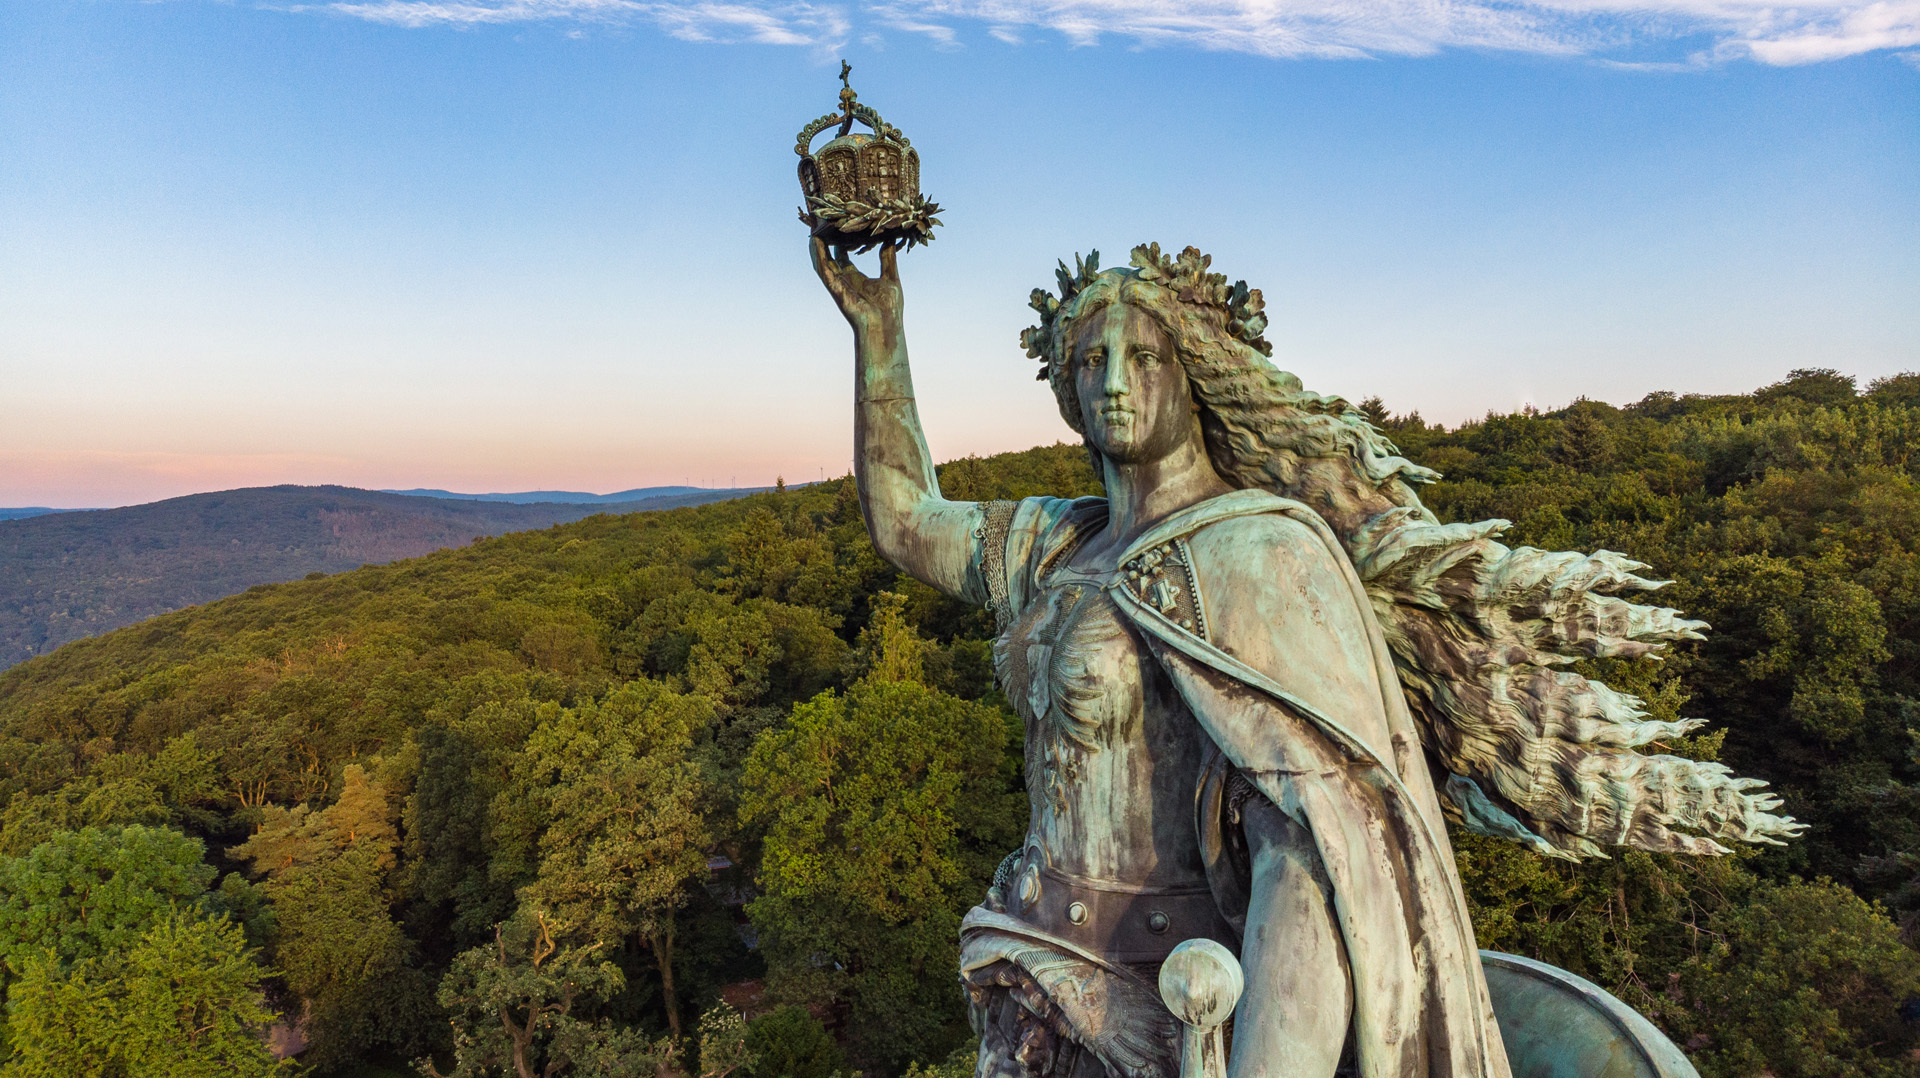 Niederwalddenkmal, Germania